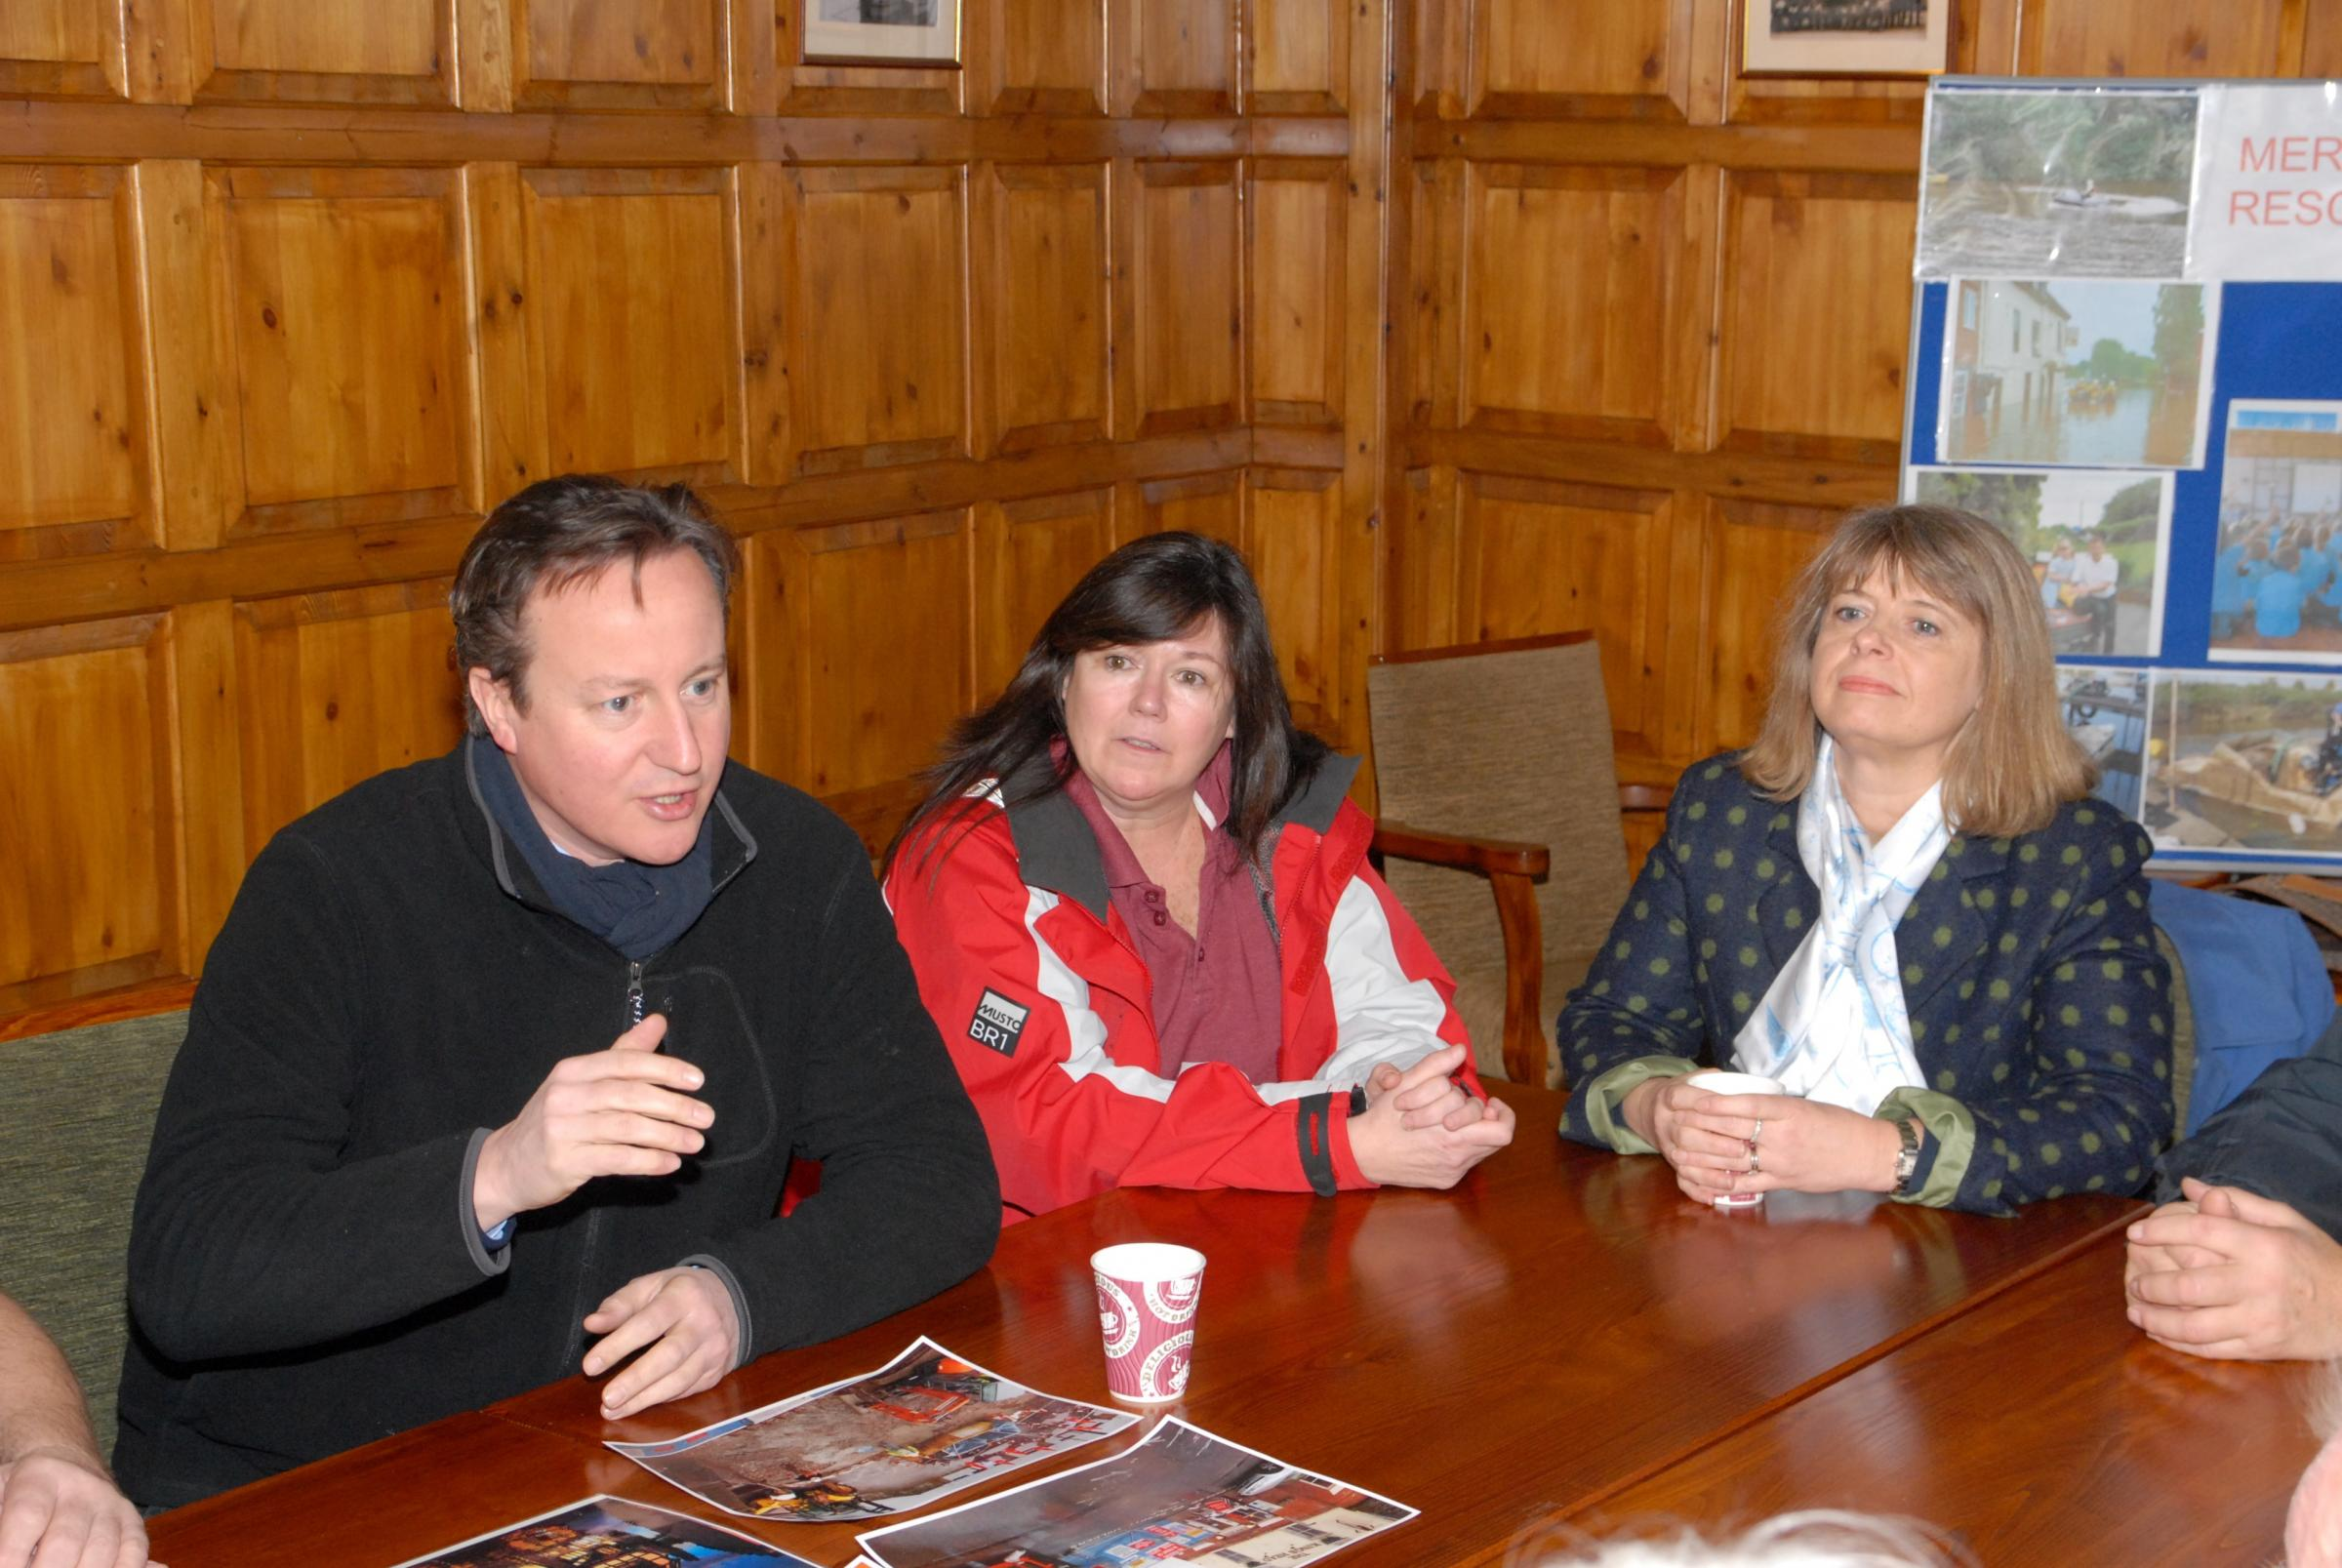 Prime Minister visits flood-hit Upton and promises £10 million recovery package for businesses